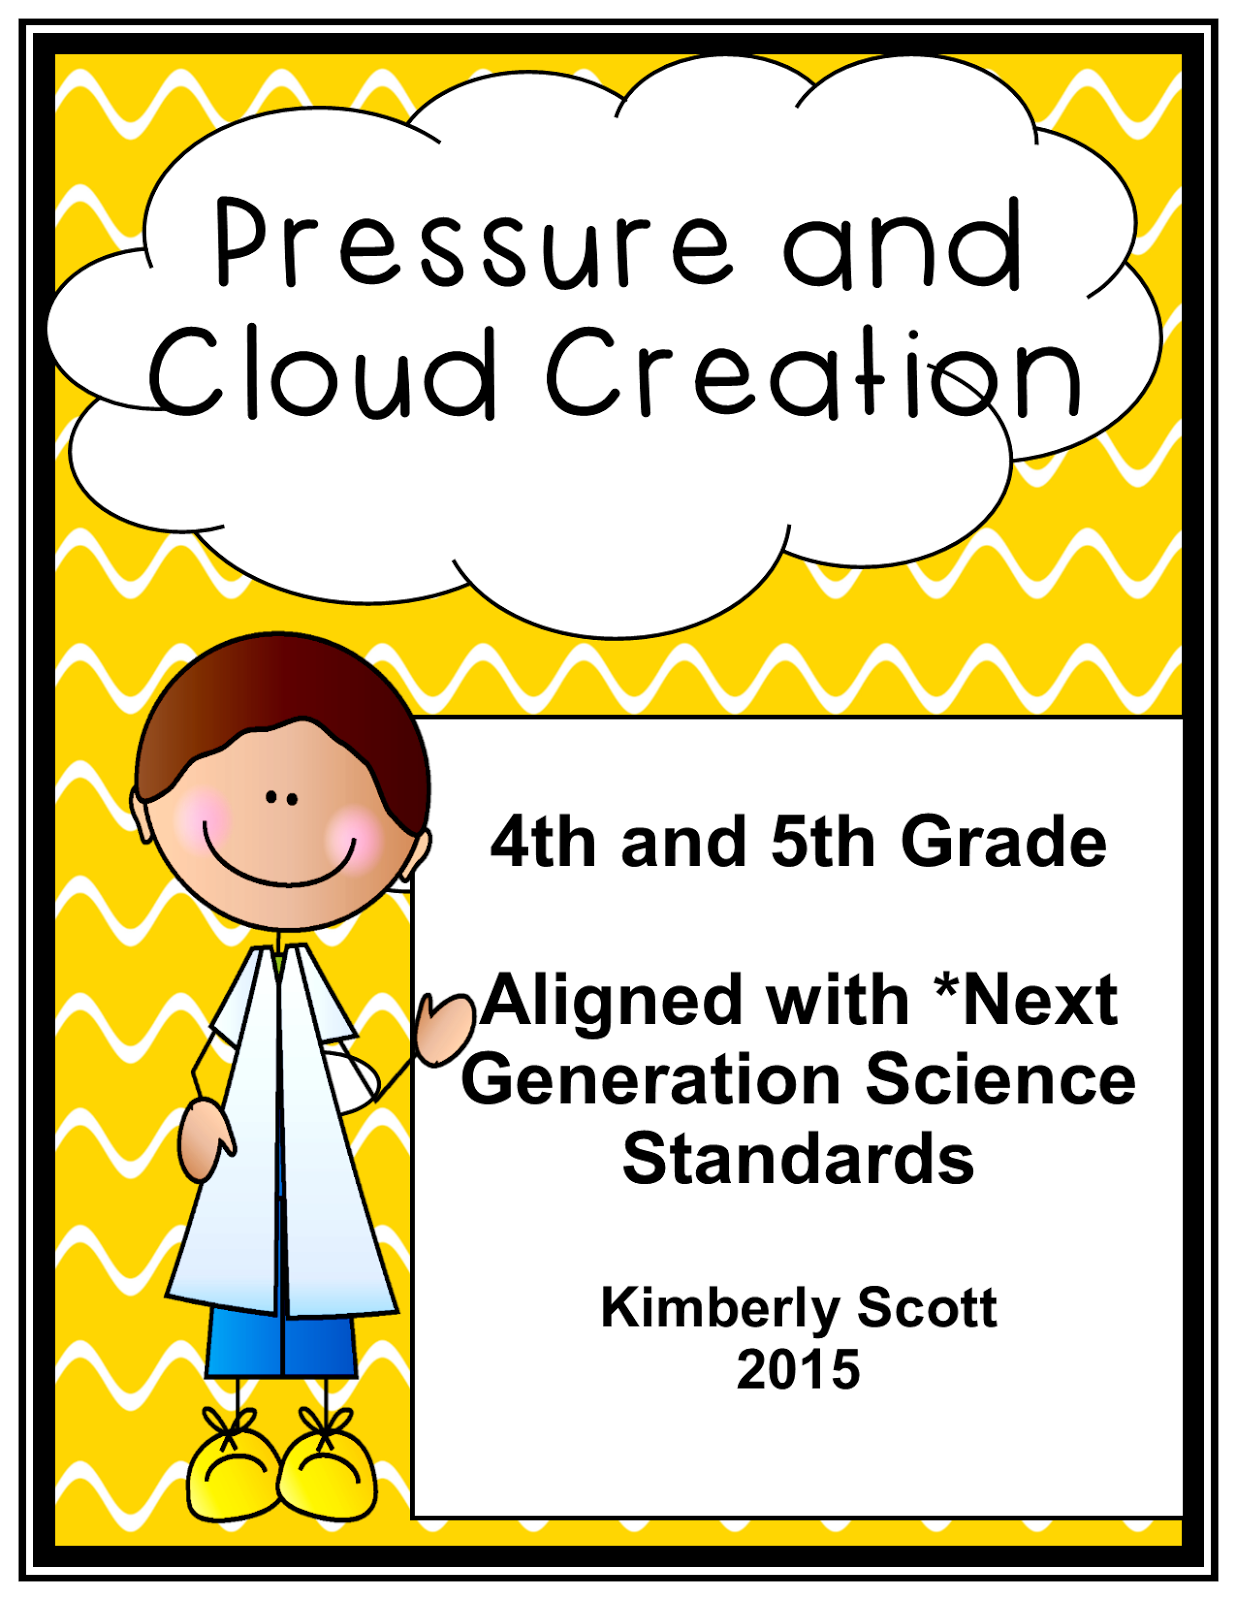 https://www.teacherspayteachers.com/Product/Pressure-and-Cloud-Creation-Create-a-Cloud-in-a-Bottle-1825369